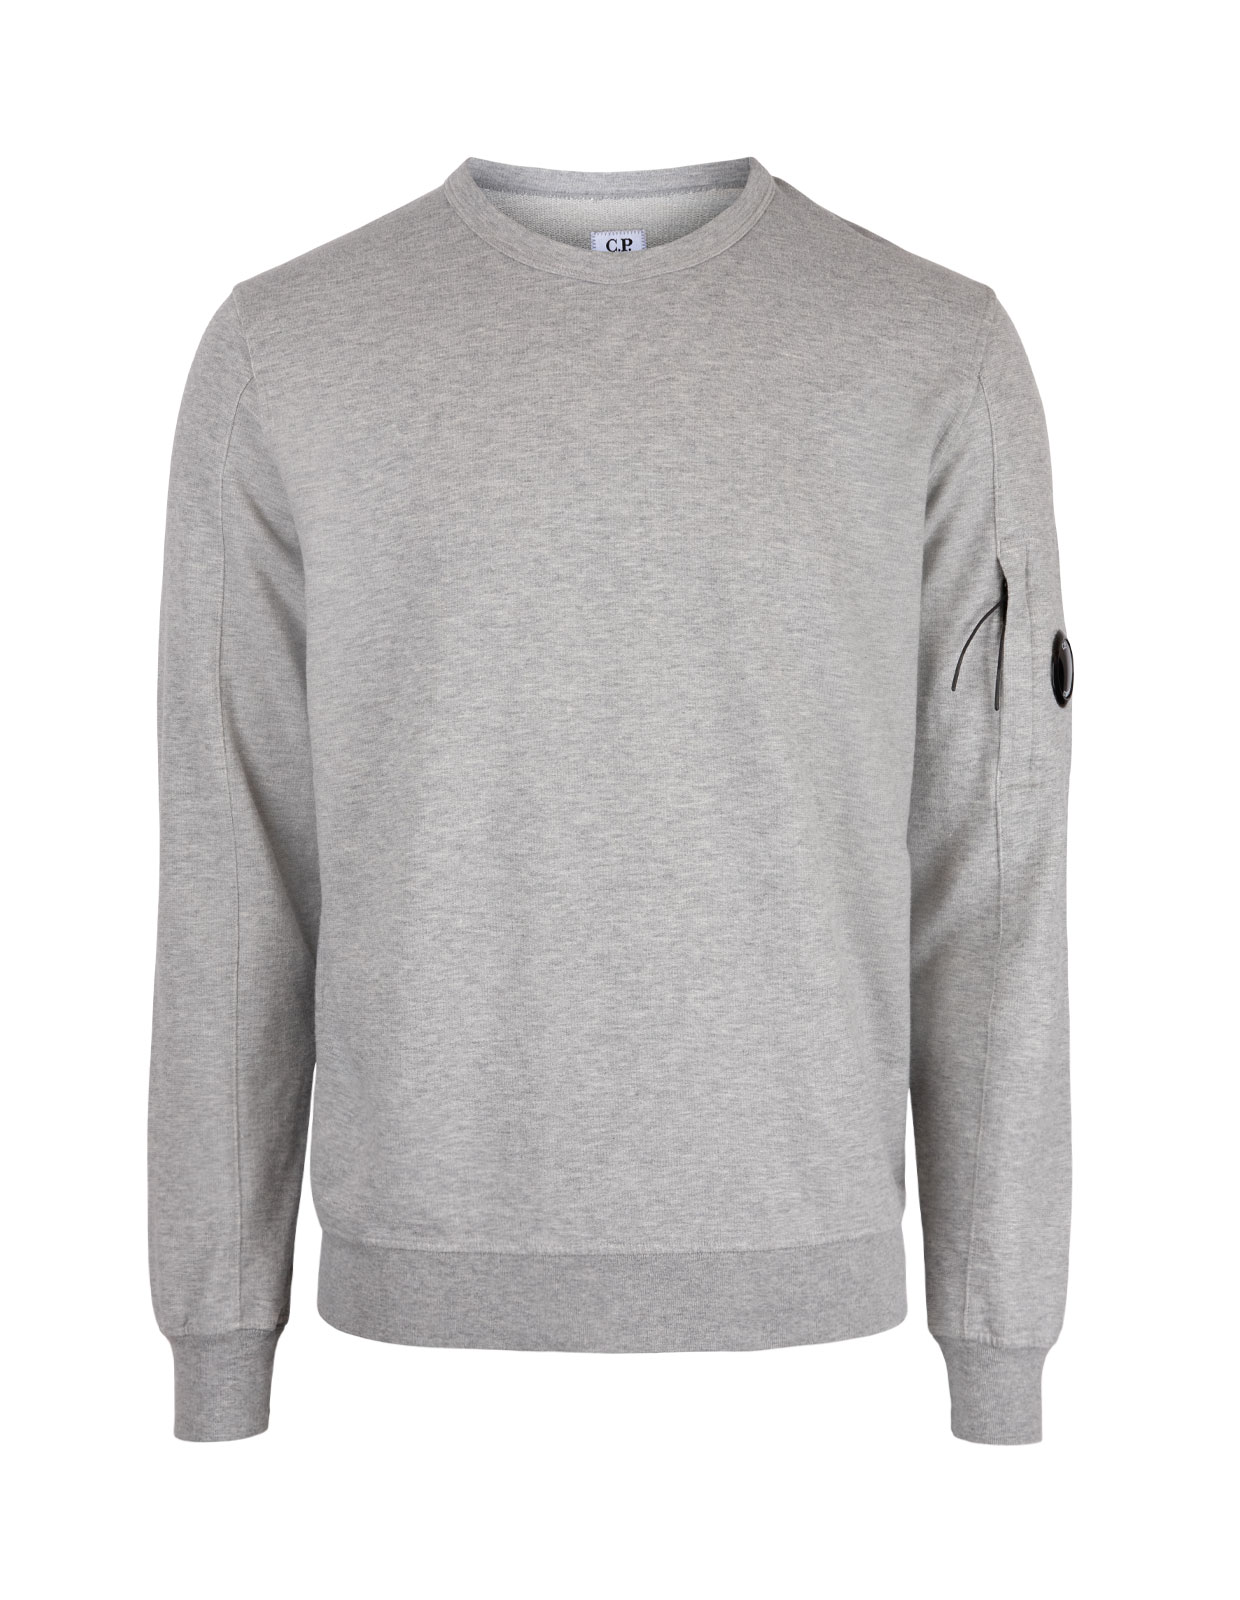 Light Fleece Garment Dyed Sweatshirt M Grey Melange